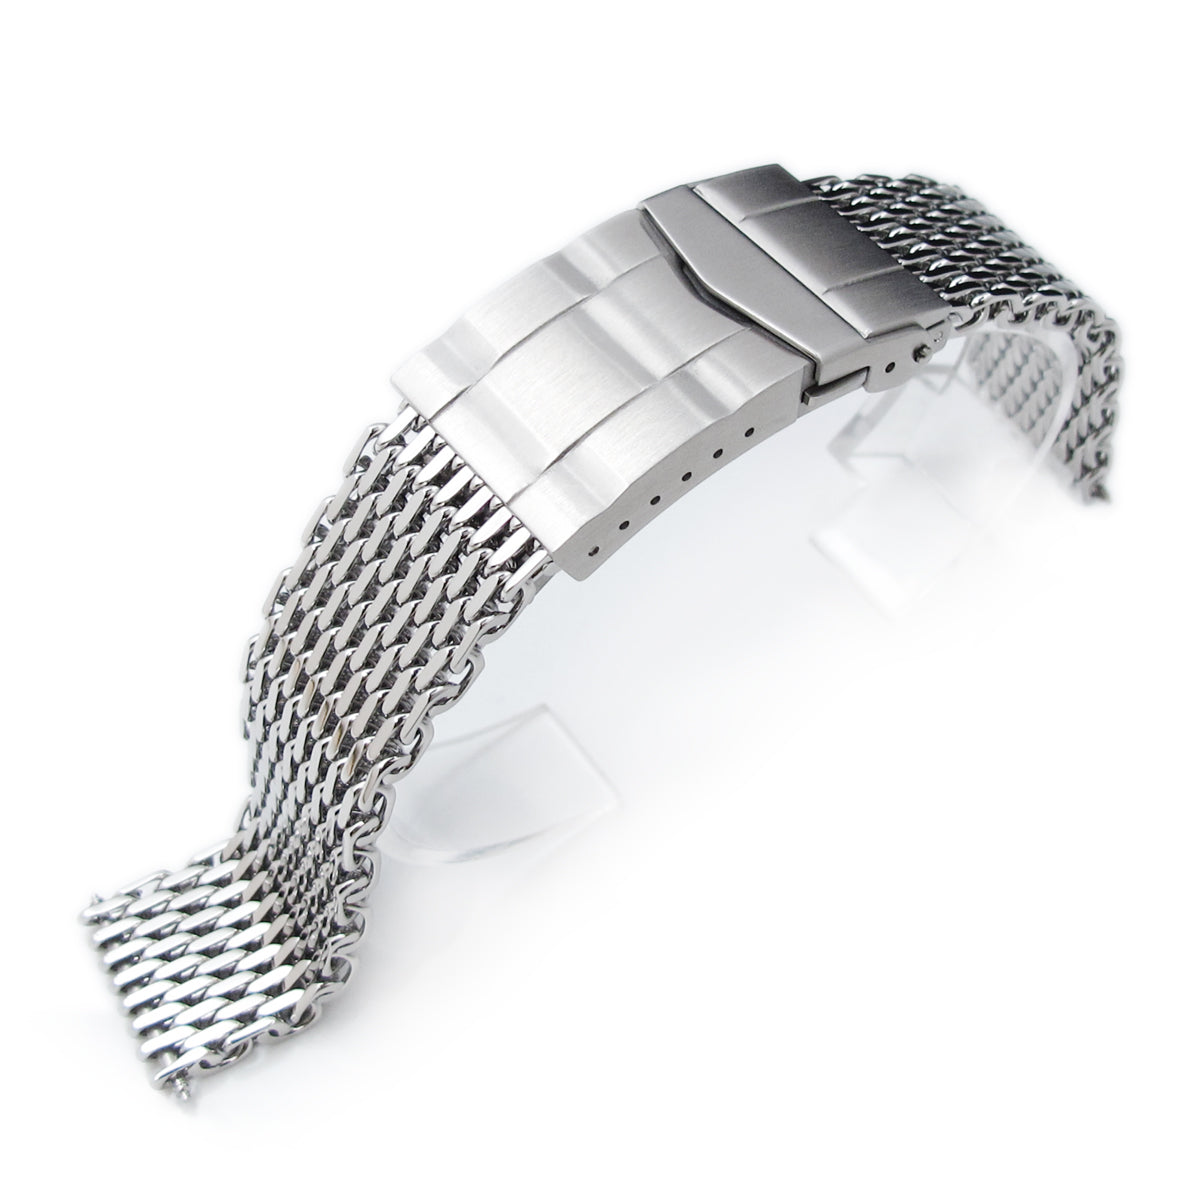 19mm 20mm Ploprof 316 Reform Stainless Steel SHARK Mesh Watch Band SUB Diver Clasp Polished Strapcode Watch Bands